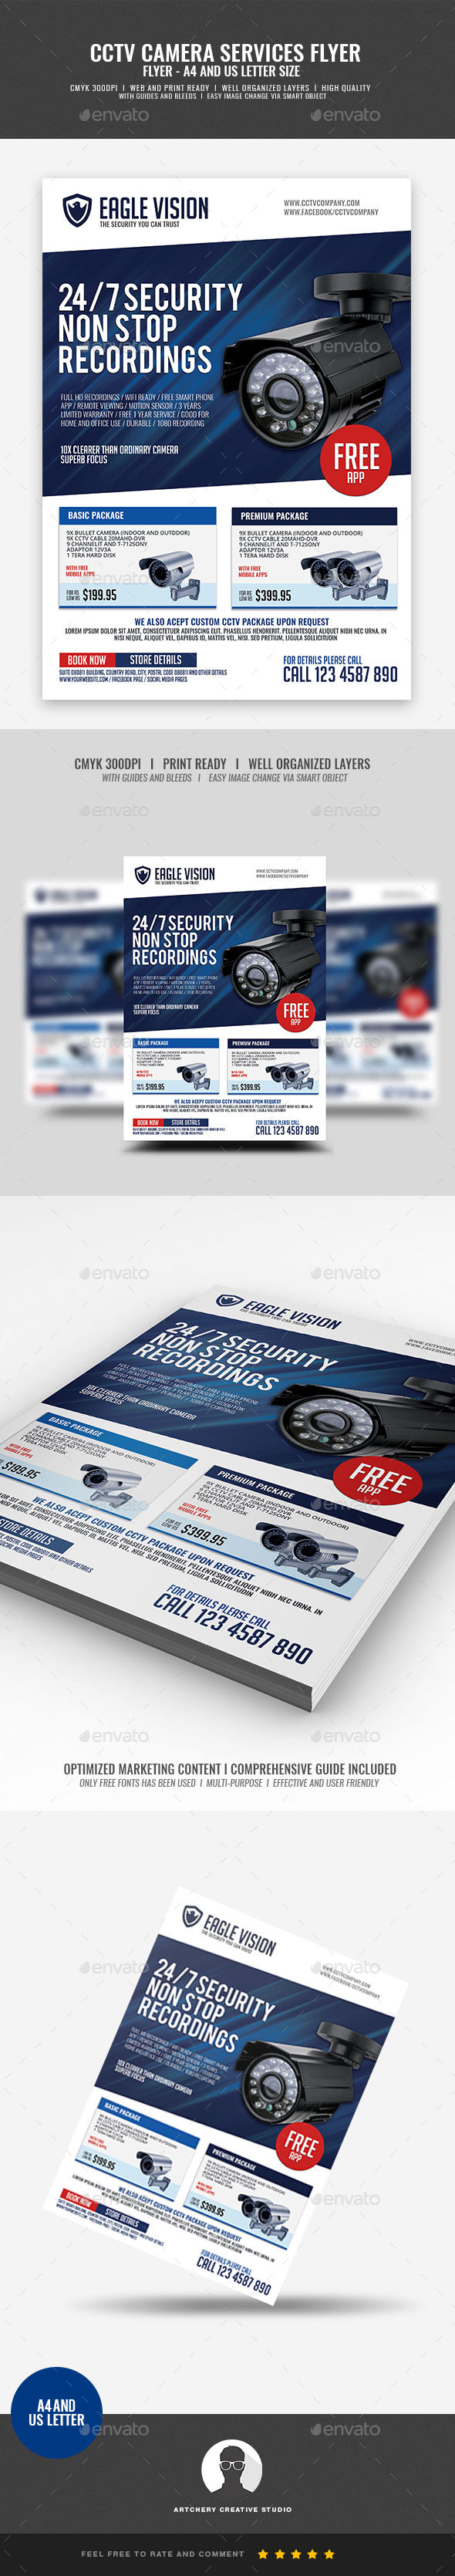 CCTV Surveillance Camera Shop Flyer - Corporate Flyers